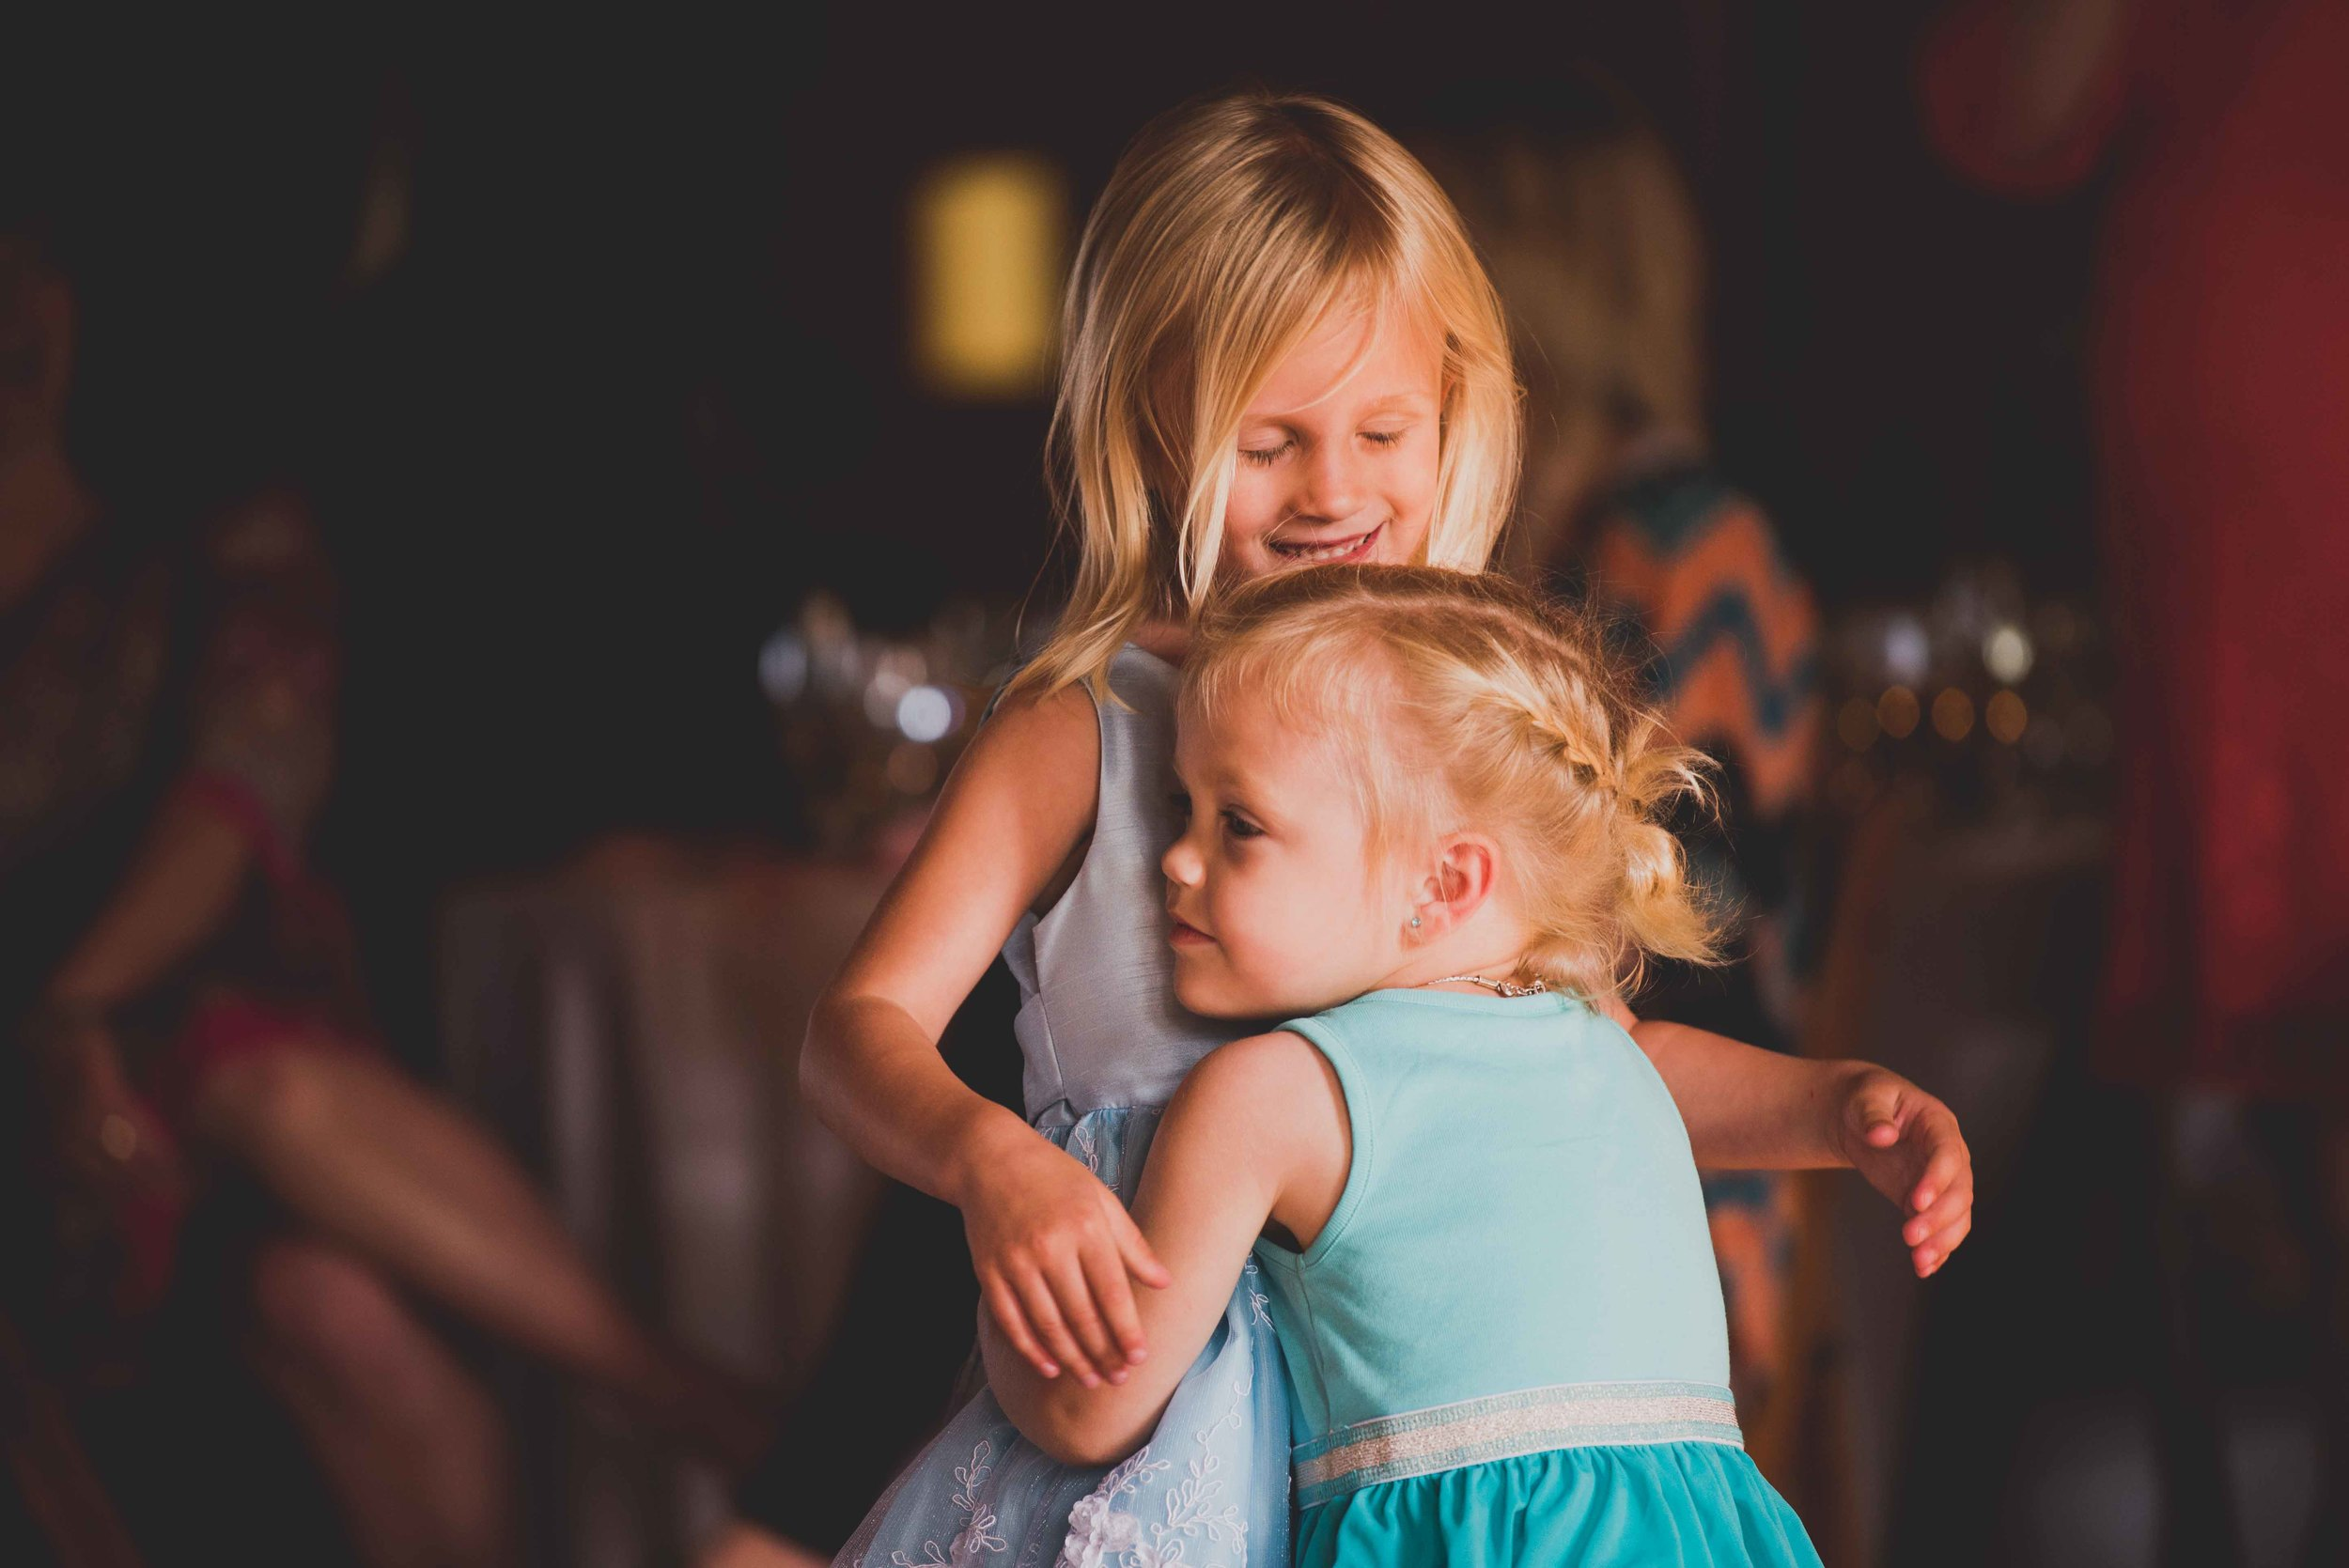 These two girls were having so much fun on the dance floor!